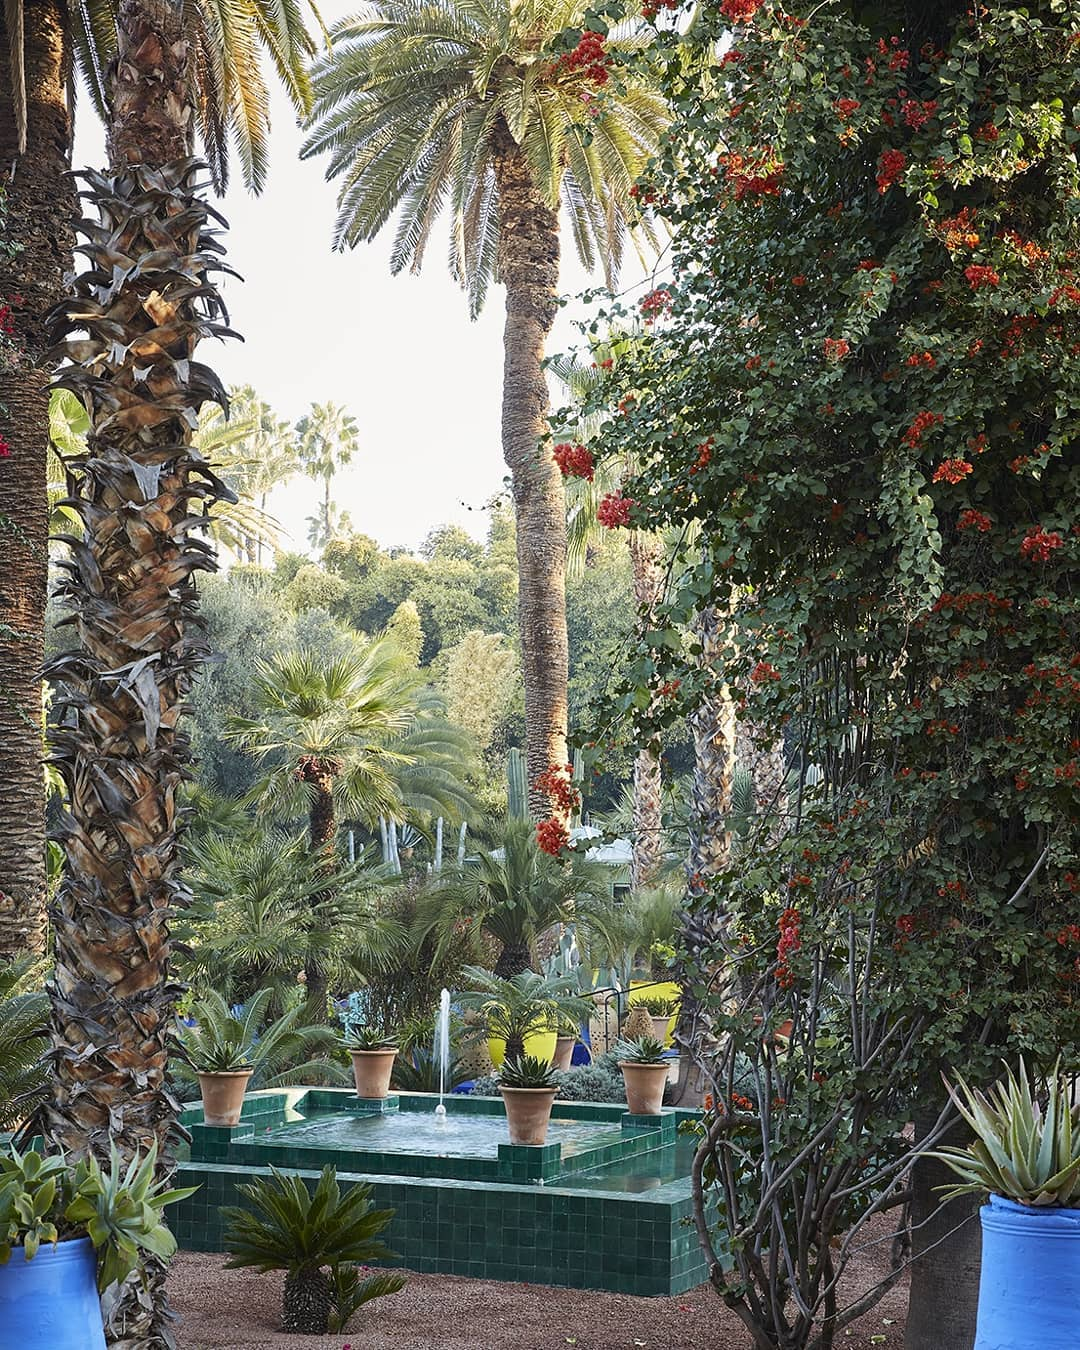 View into the garden of Jardin Majorelle with water fountain